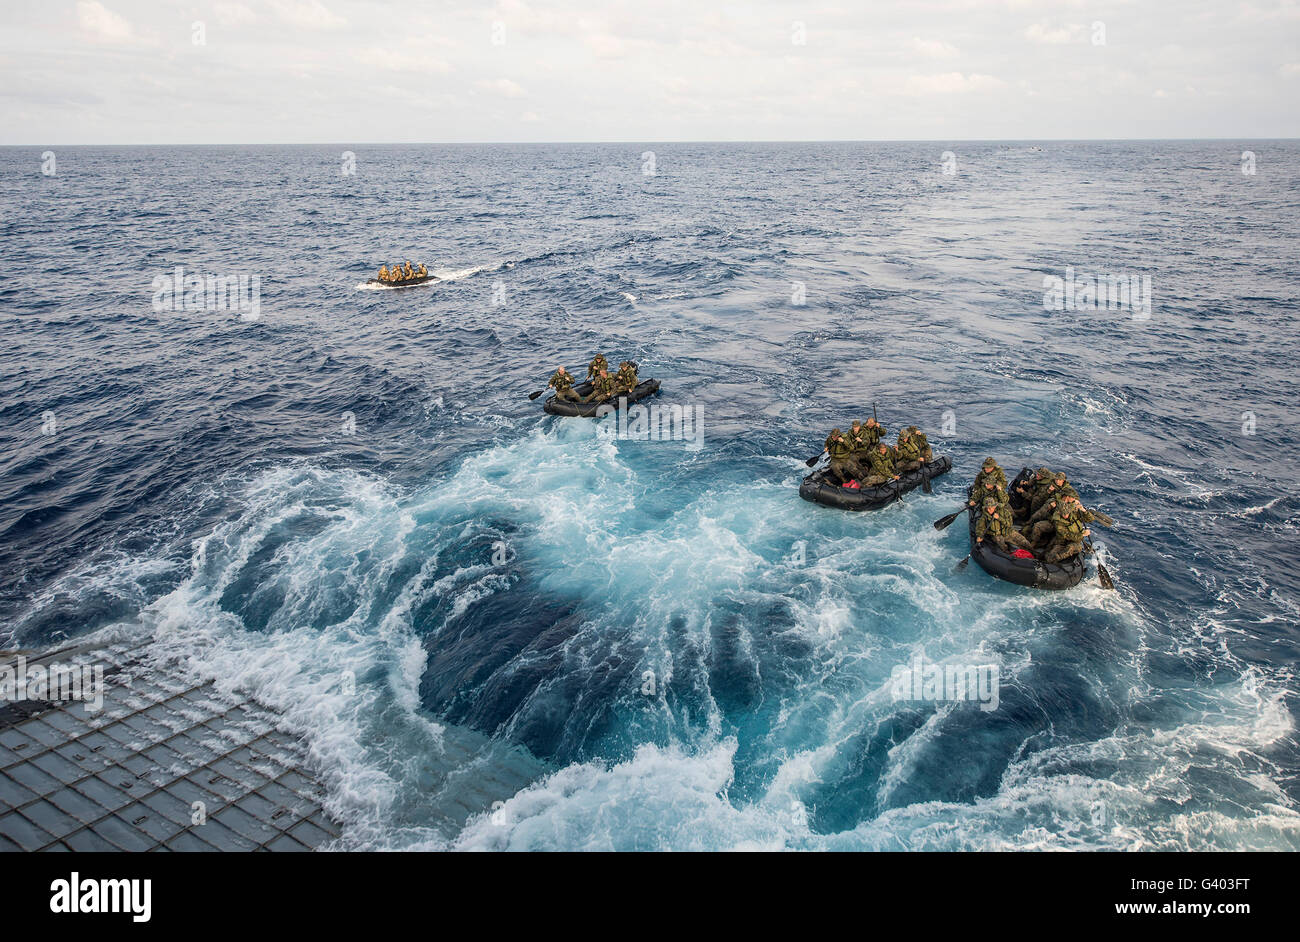 Marines conduct launch and recovery operations with combat rubber raiding craft. Stock Photo